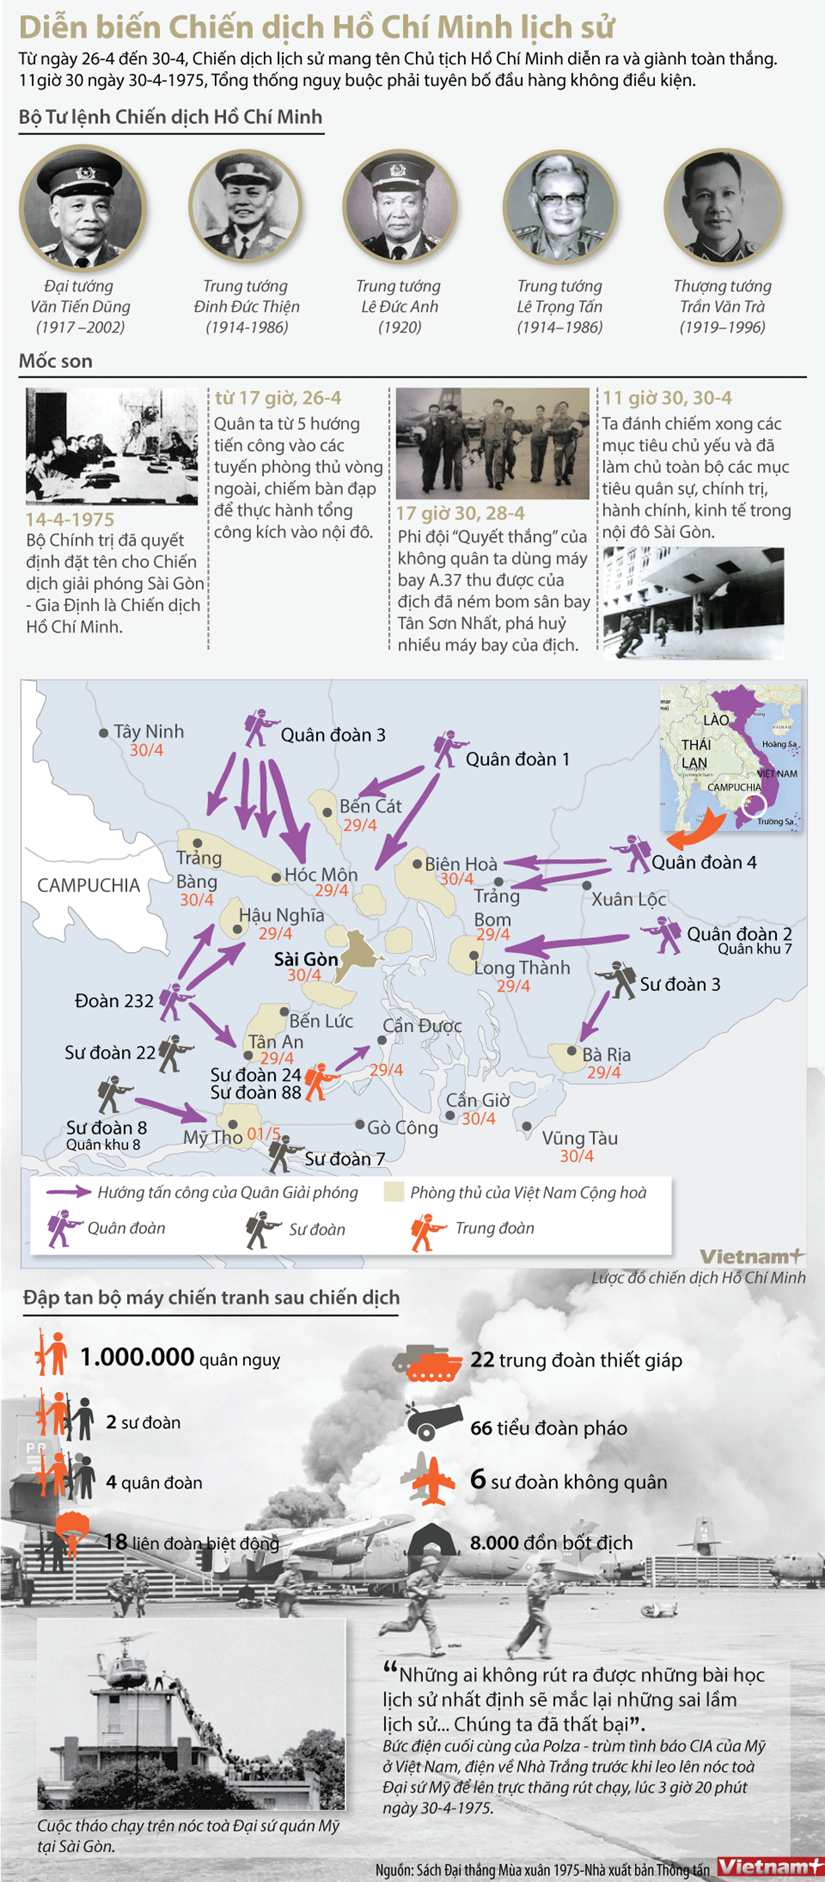 [Infographics] Chien dich Ho Chi Minh lich su dien ra nhu the nao? hinh anh 1